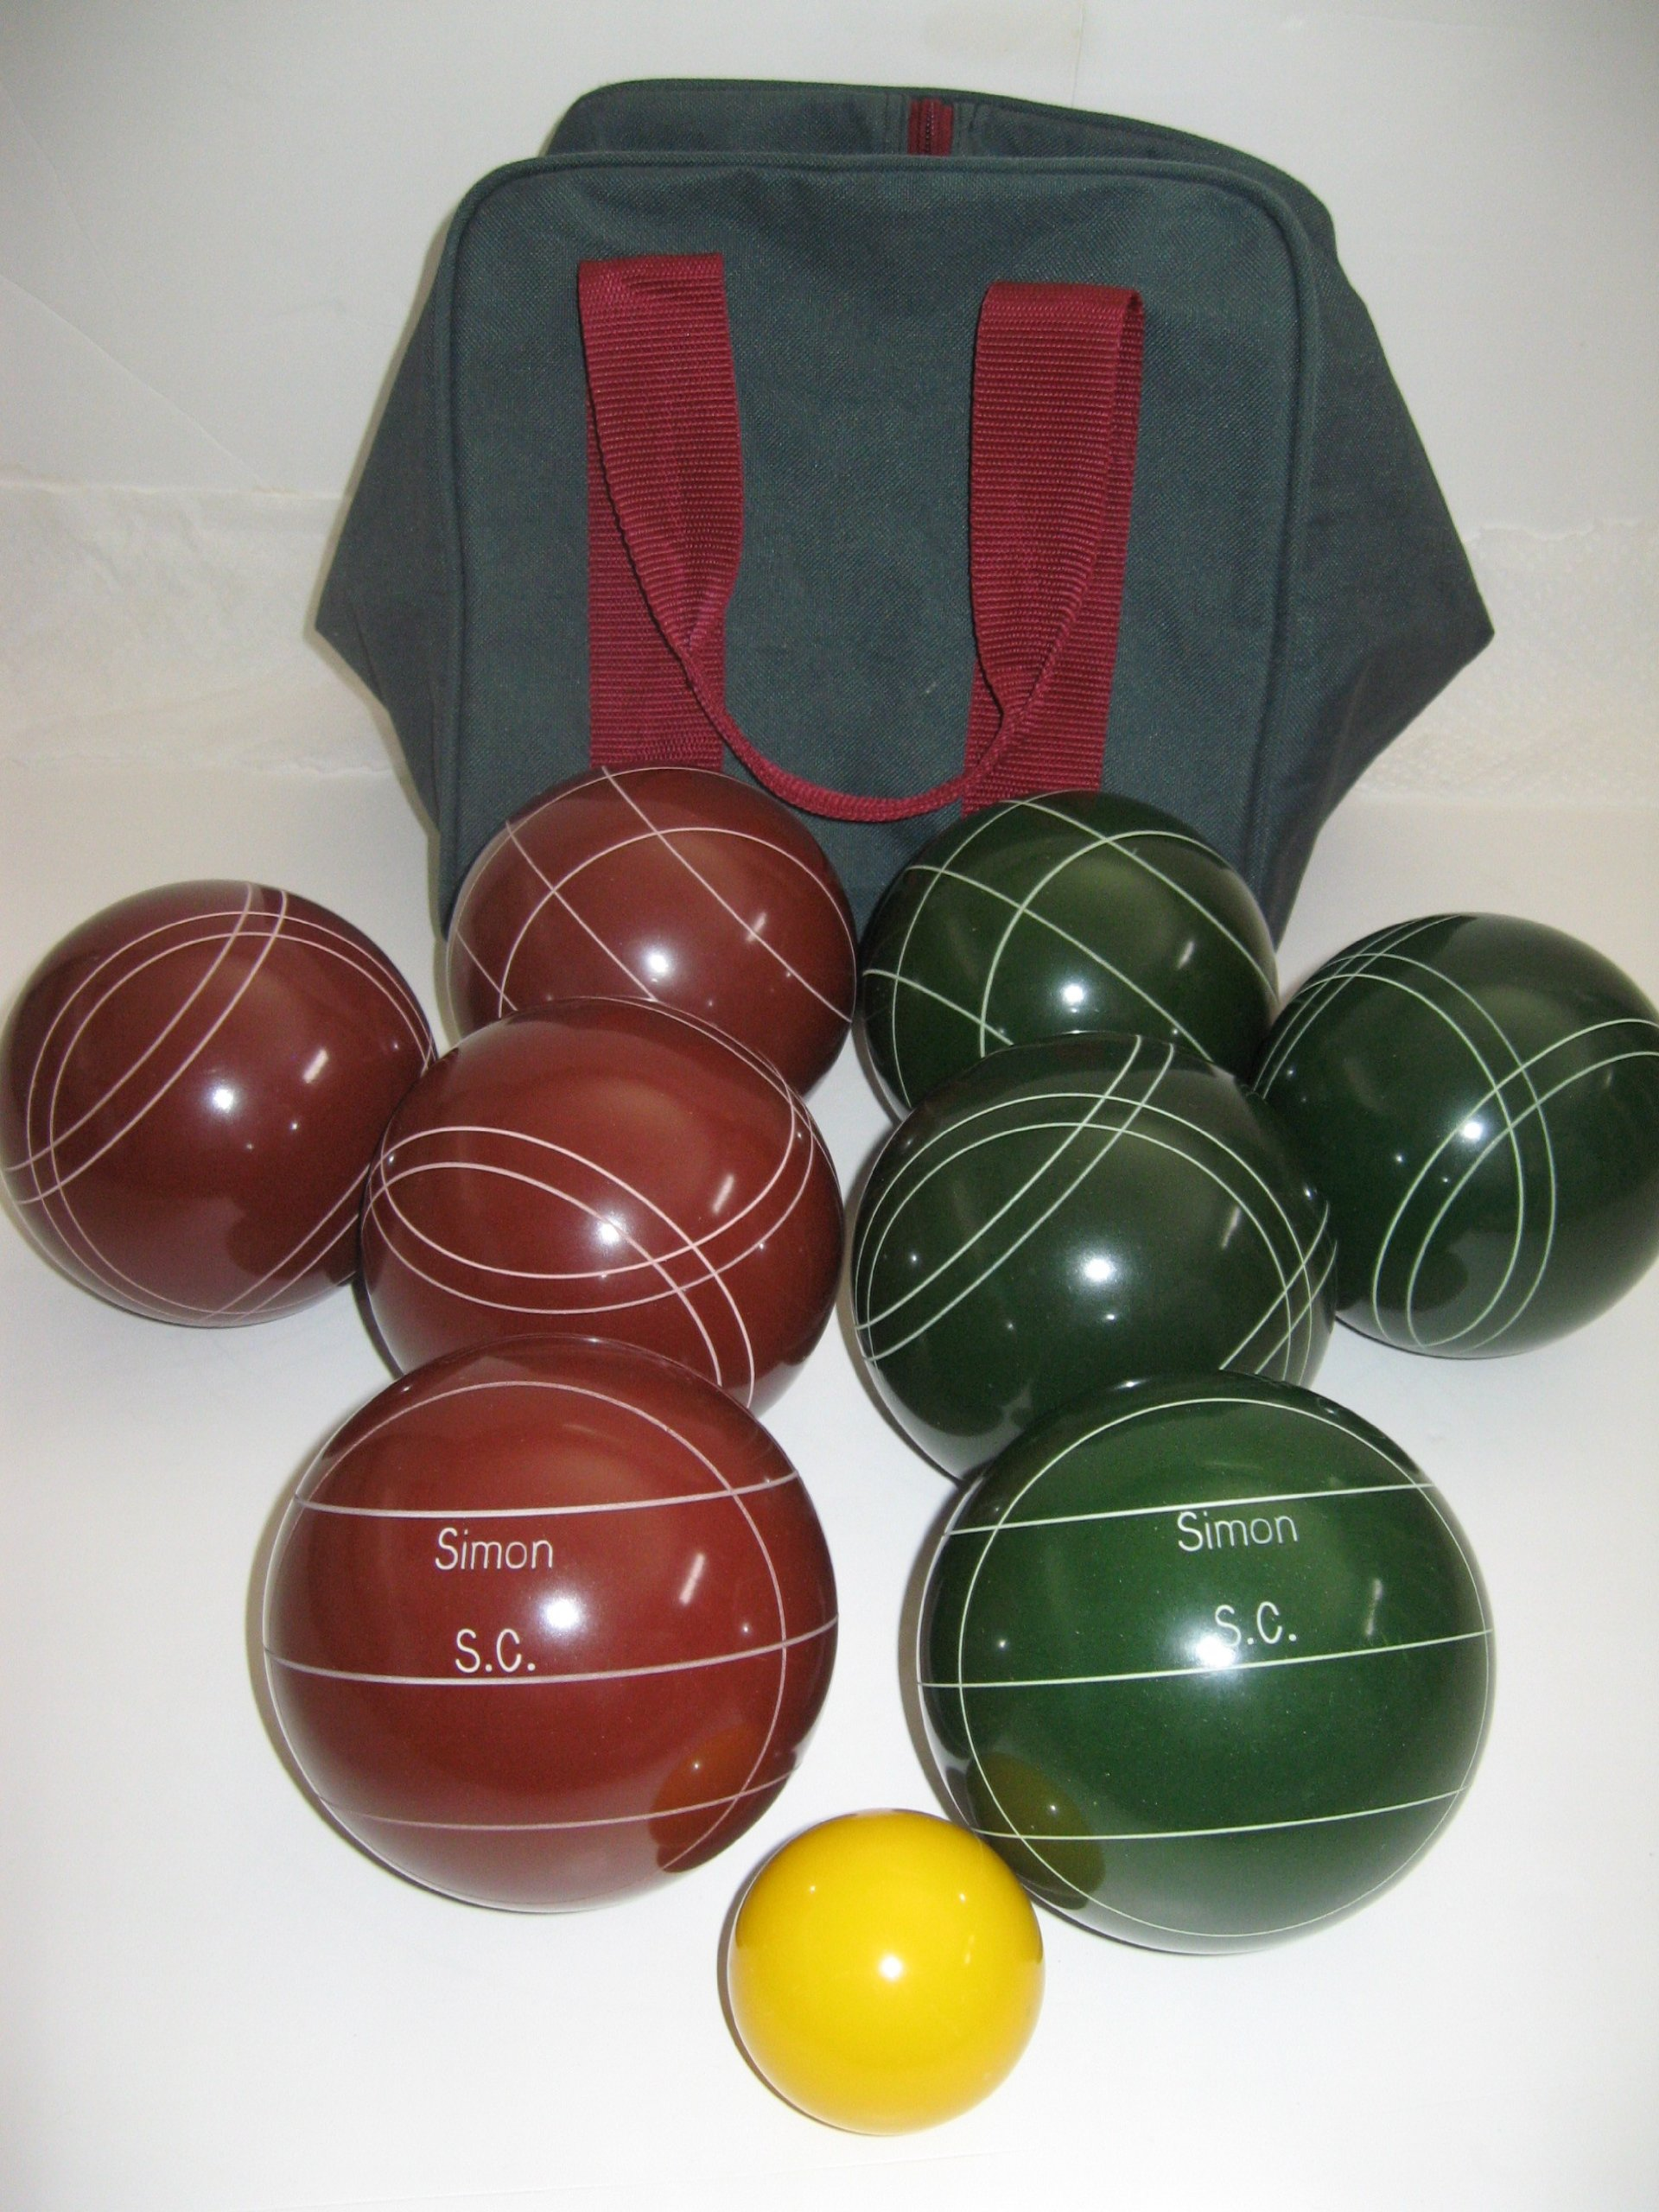 Premium Quality Engraved Bocce package - 107mm EPCO Red and Green balls with engraving [Misc.]